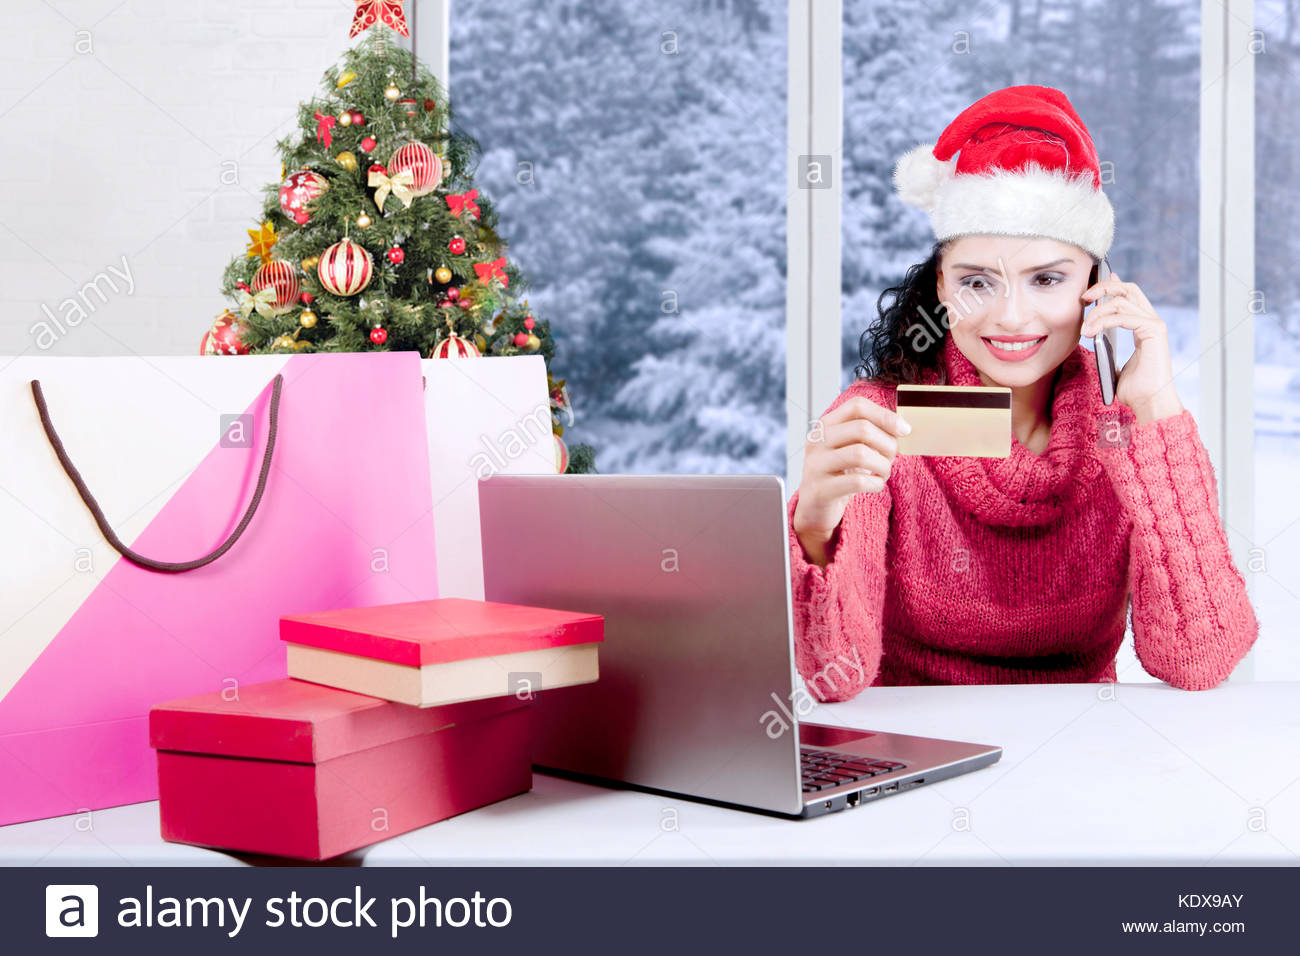 Buying Christmas Gifts Stock Photos & Buying Christmas Gifts Stock ...